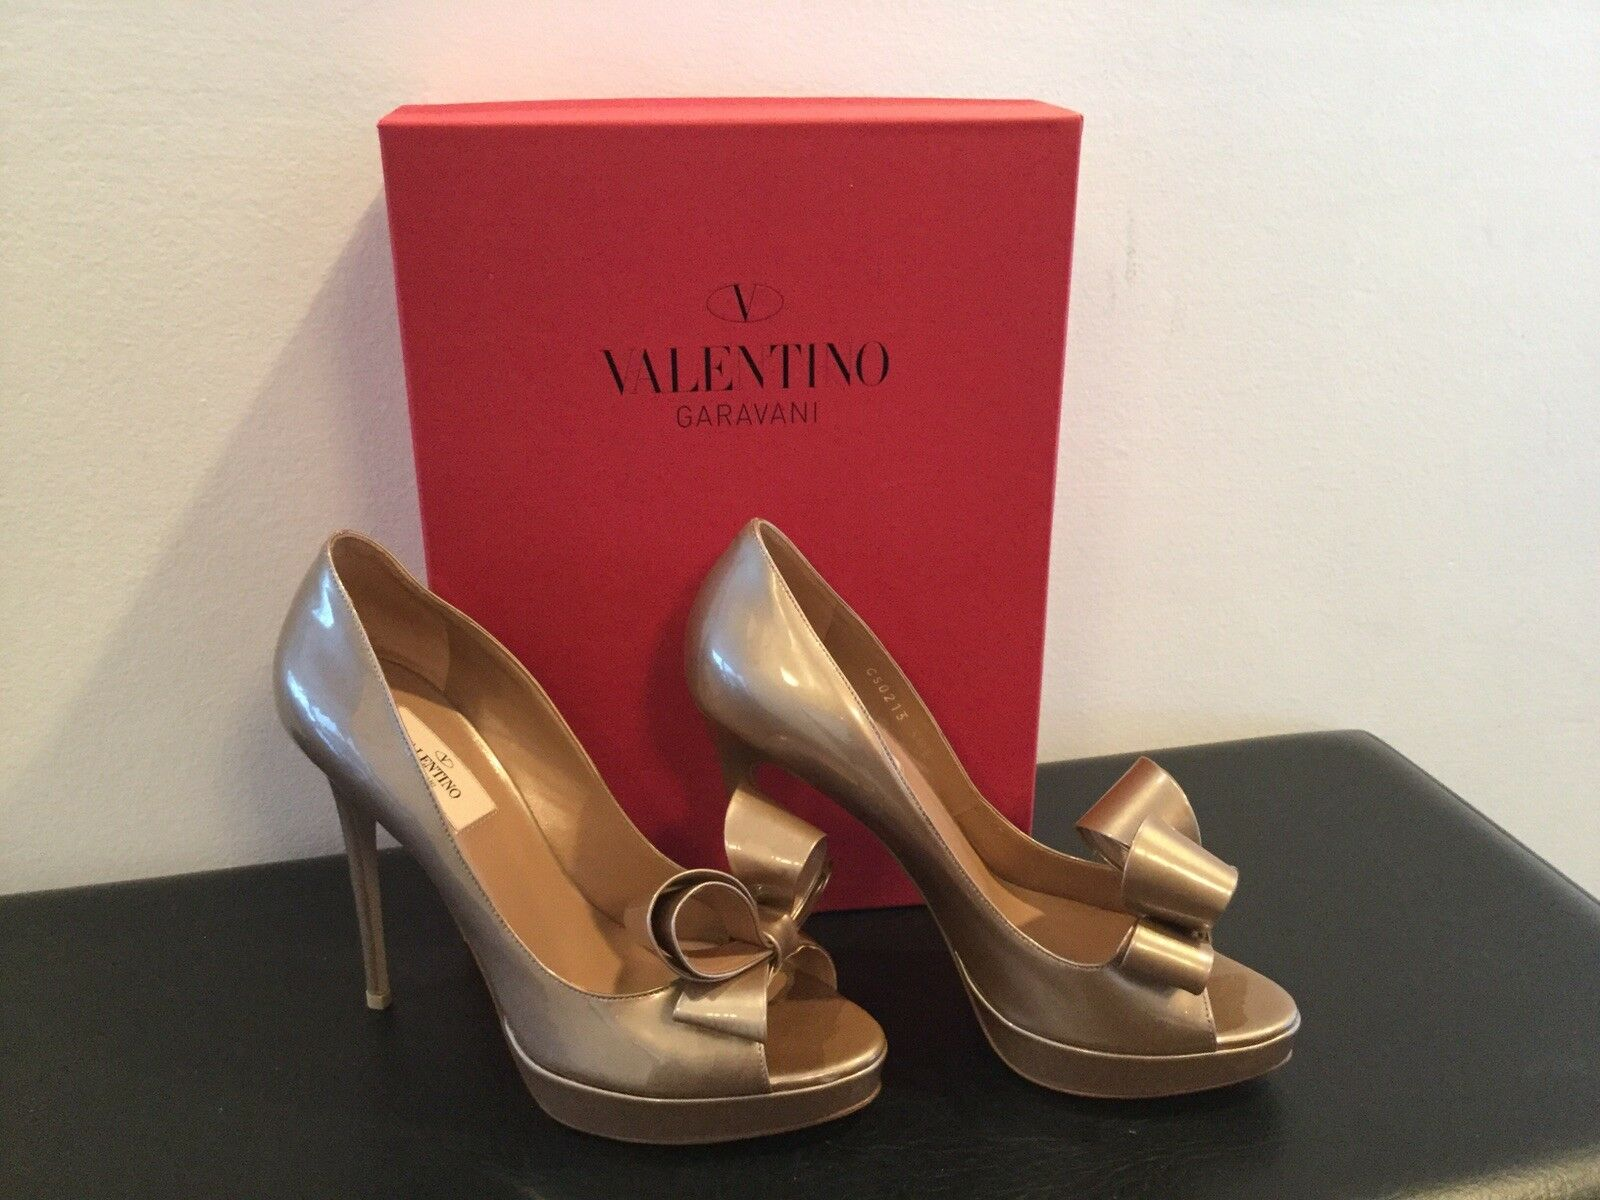 NIB Valentino Garavani Couture Nude Patent, Open Toe Bow Pumps Heels shoes 38.5